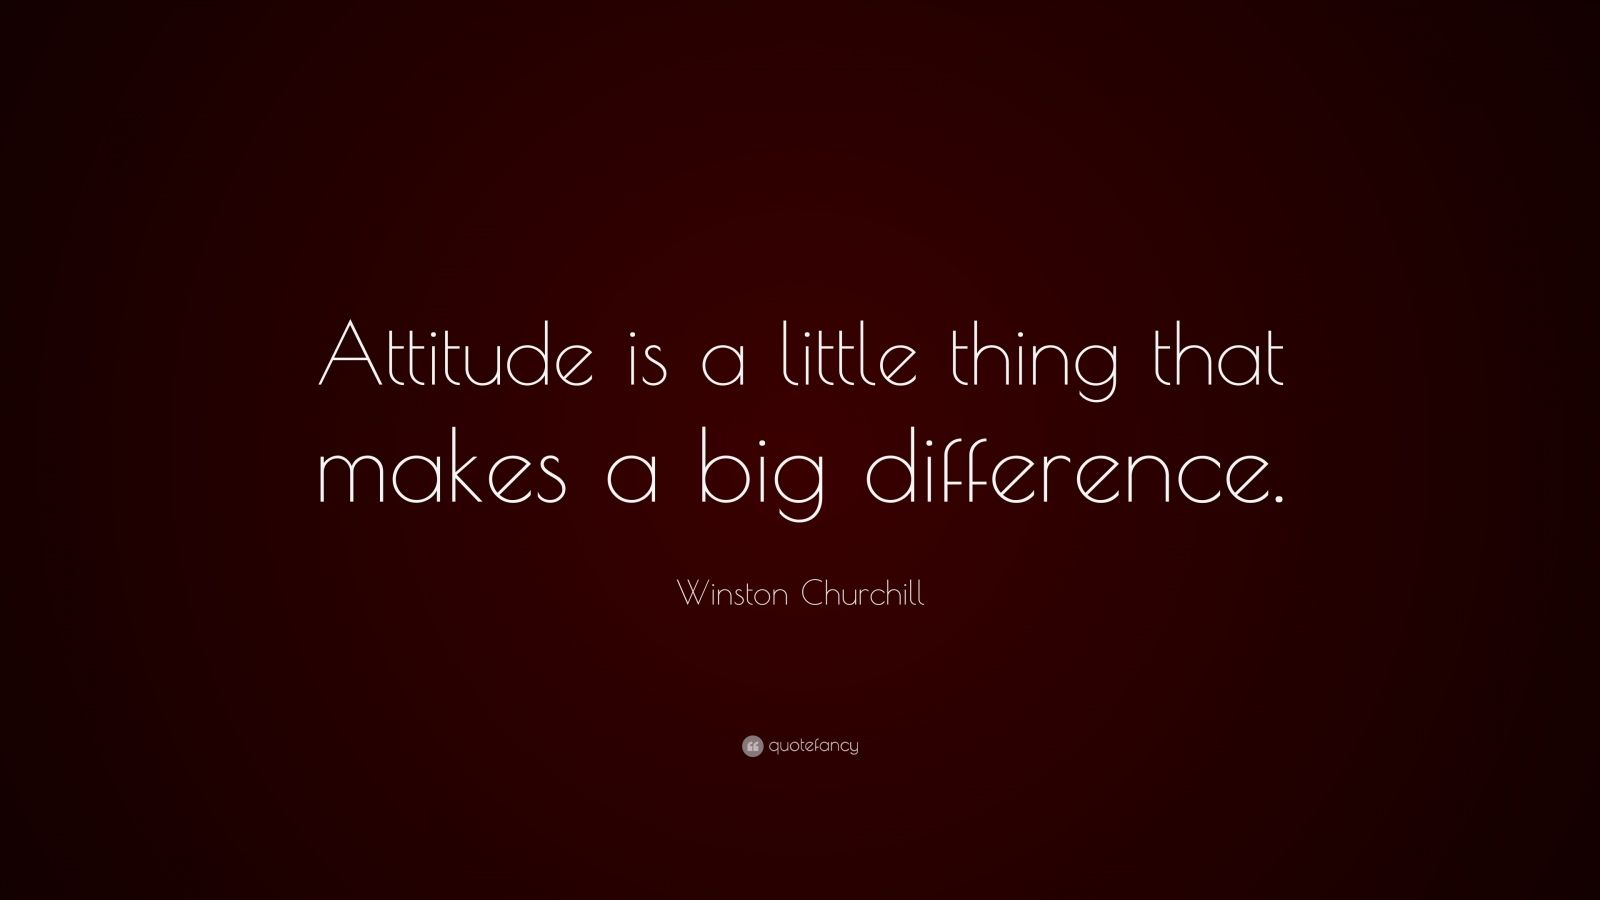 A Little Thing Is Attitude Quote Winston Churchill